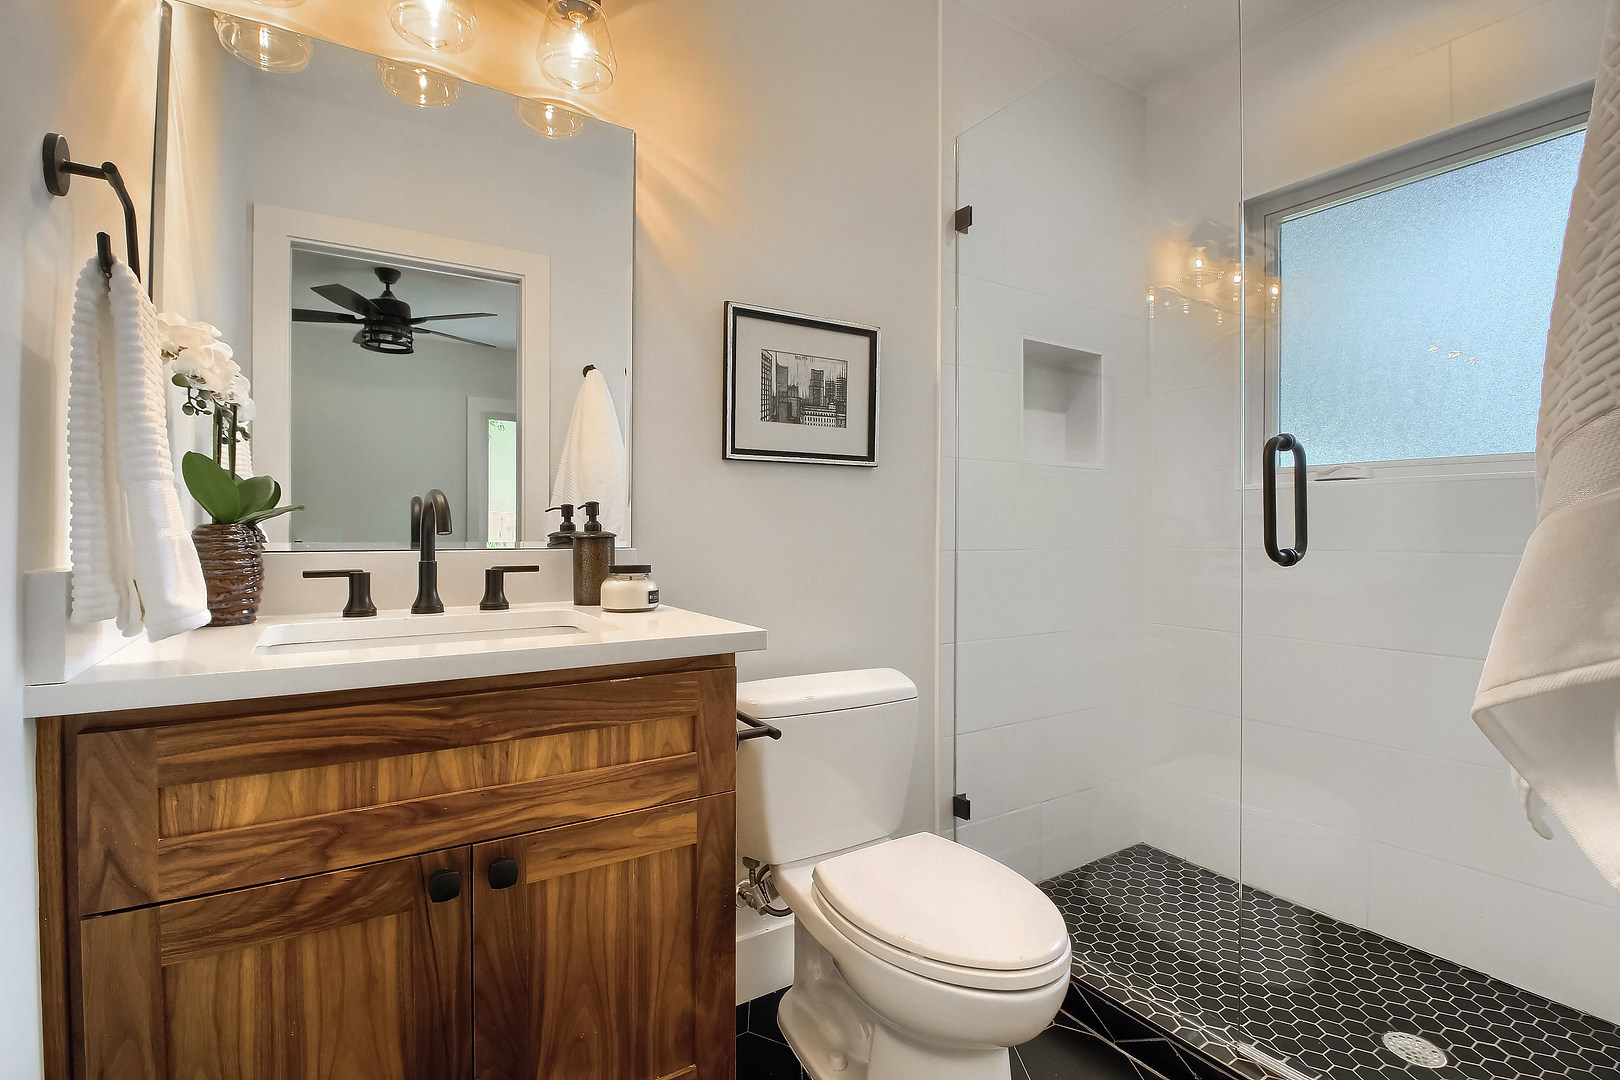 Home Renovation Guest Bathroom on West 29th in Austin, Texas